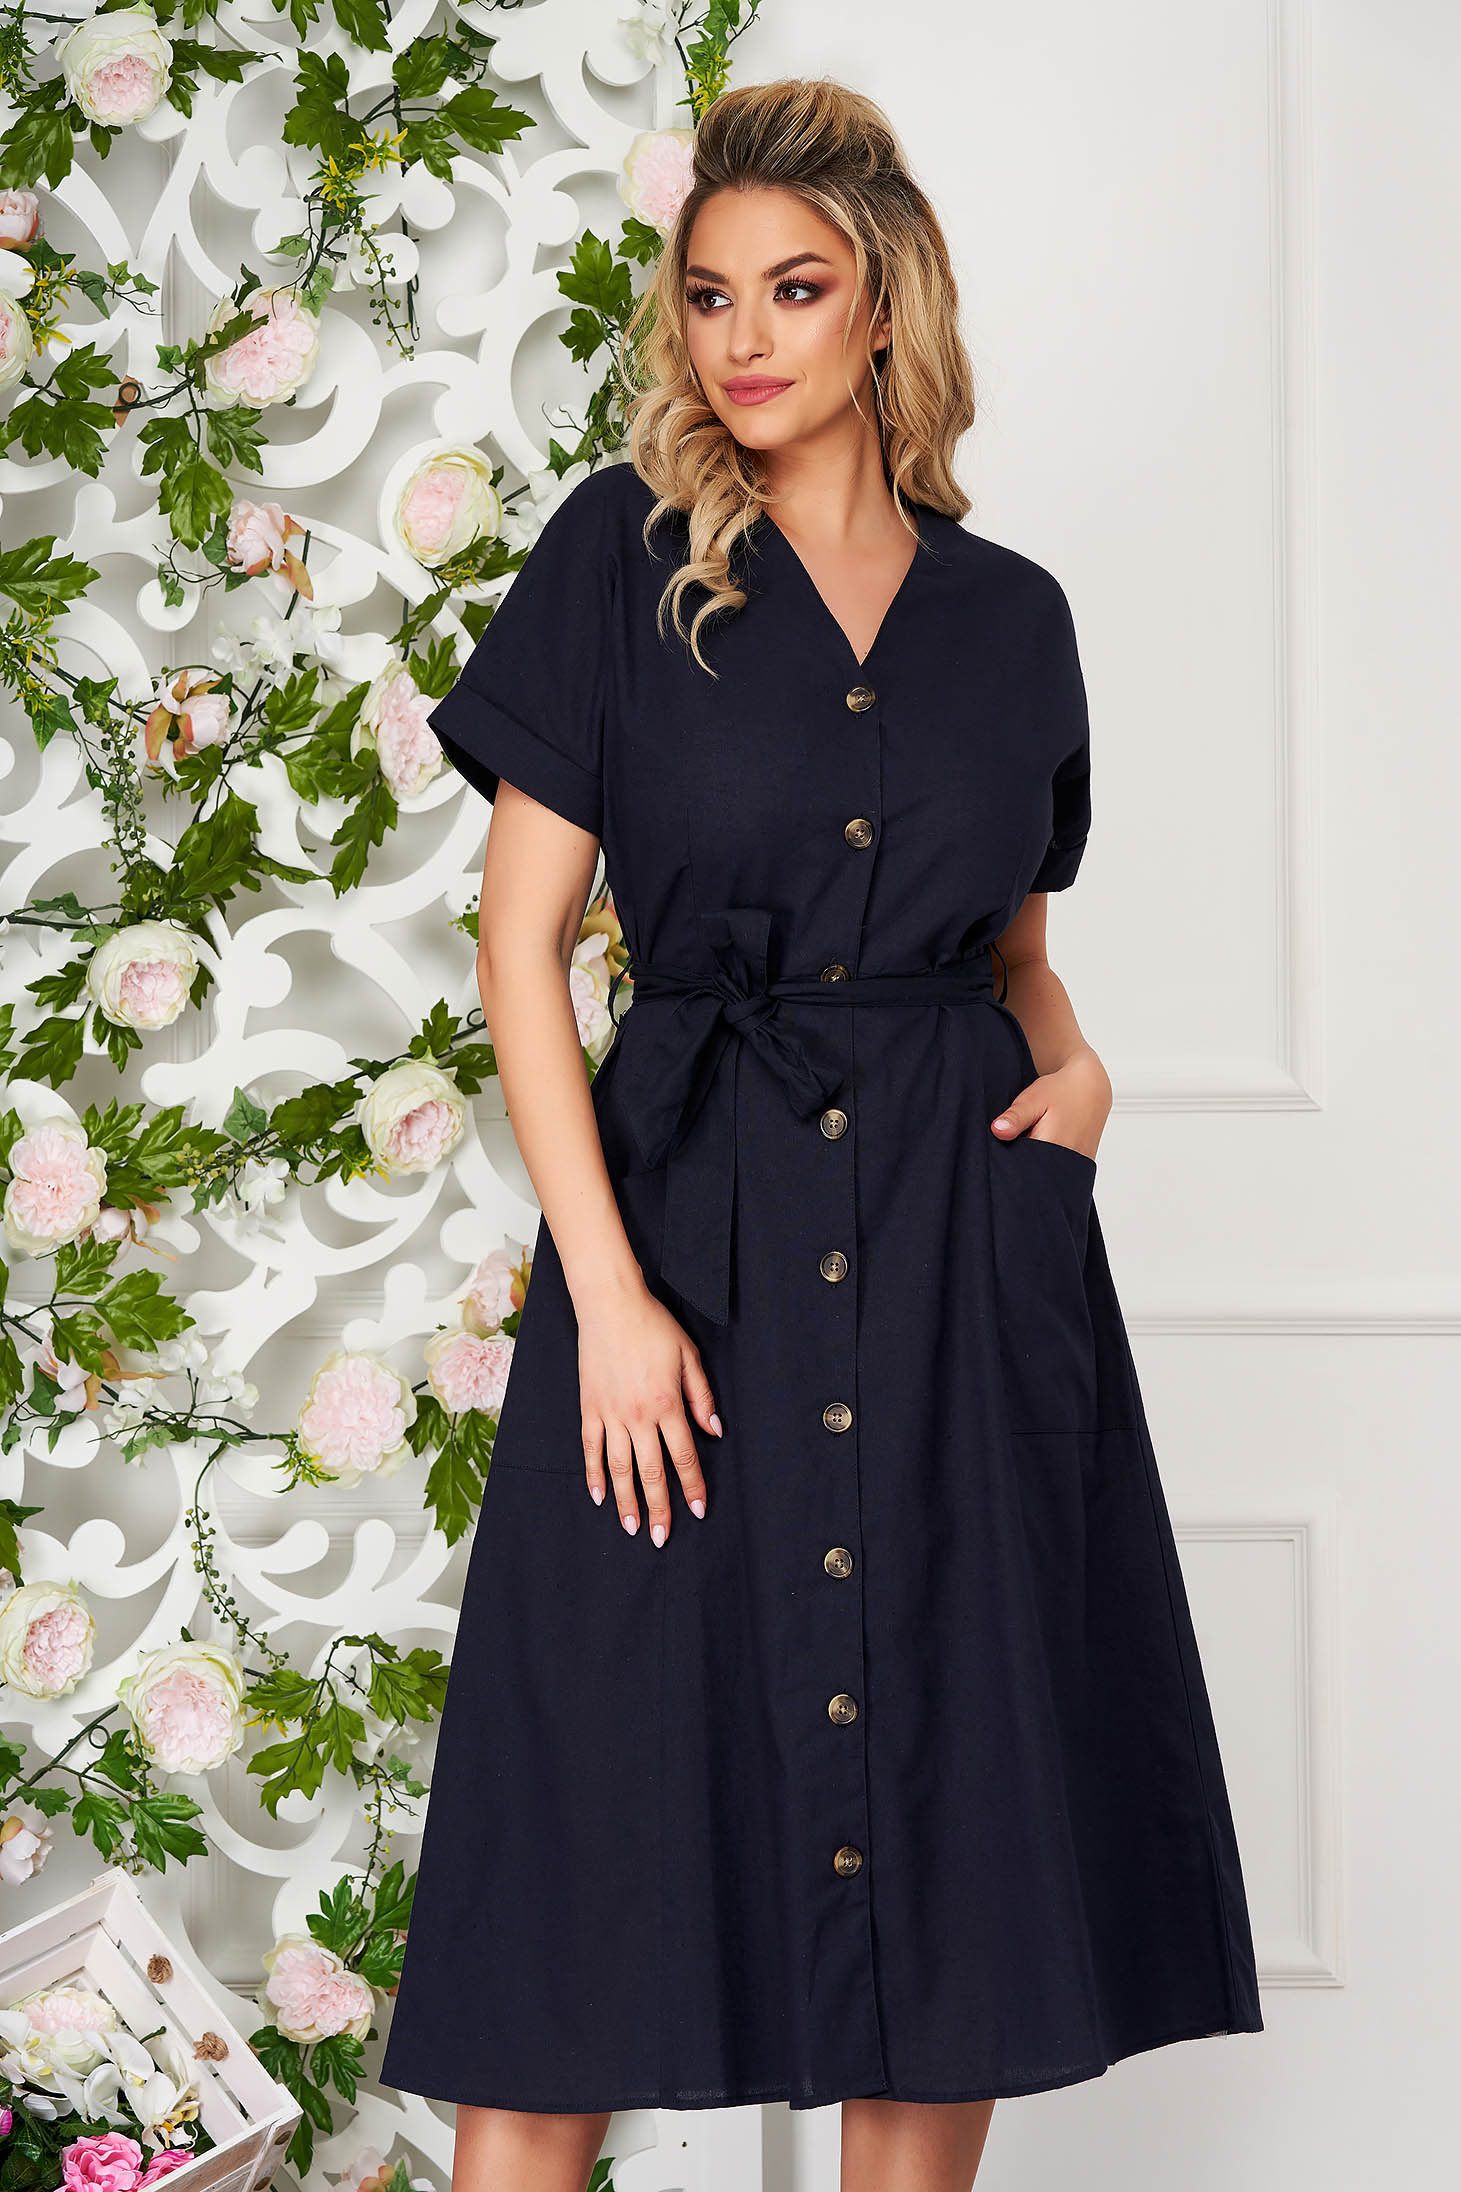 Dress darkblue midi daily cloche with pockets accessorized with tied waistband